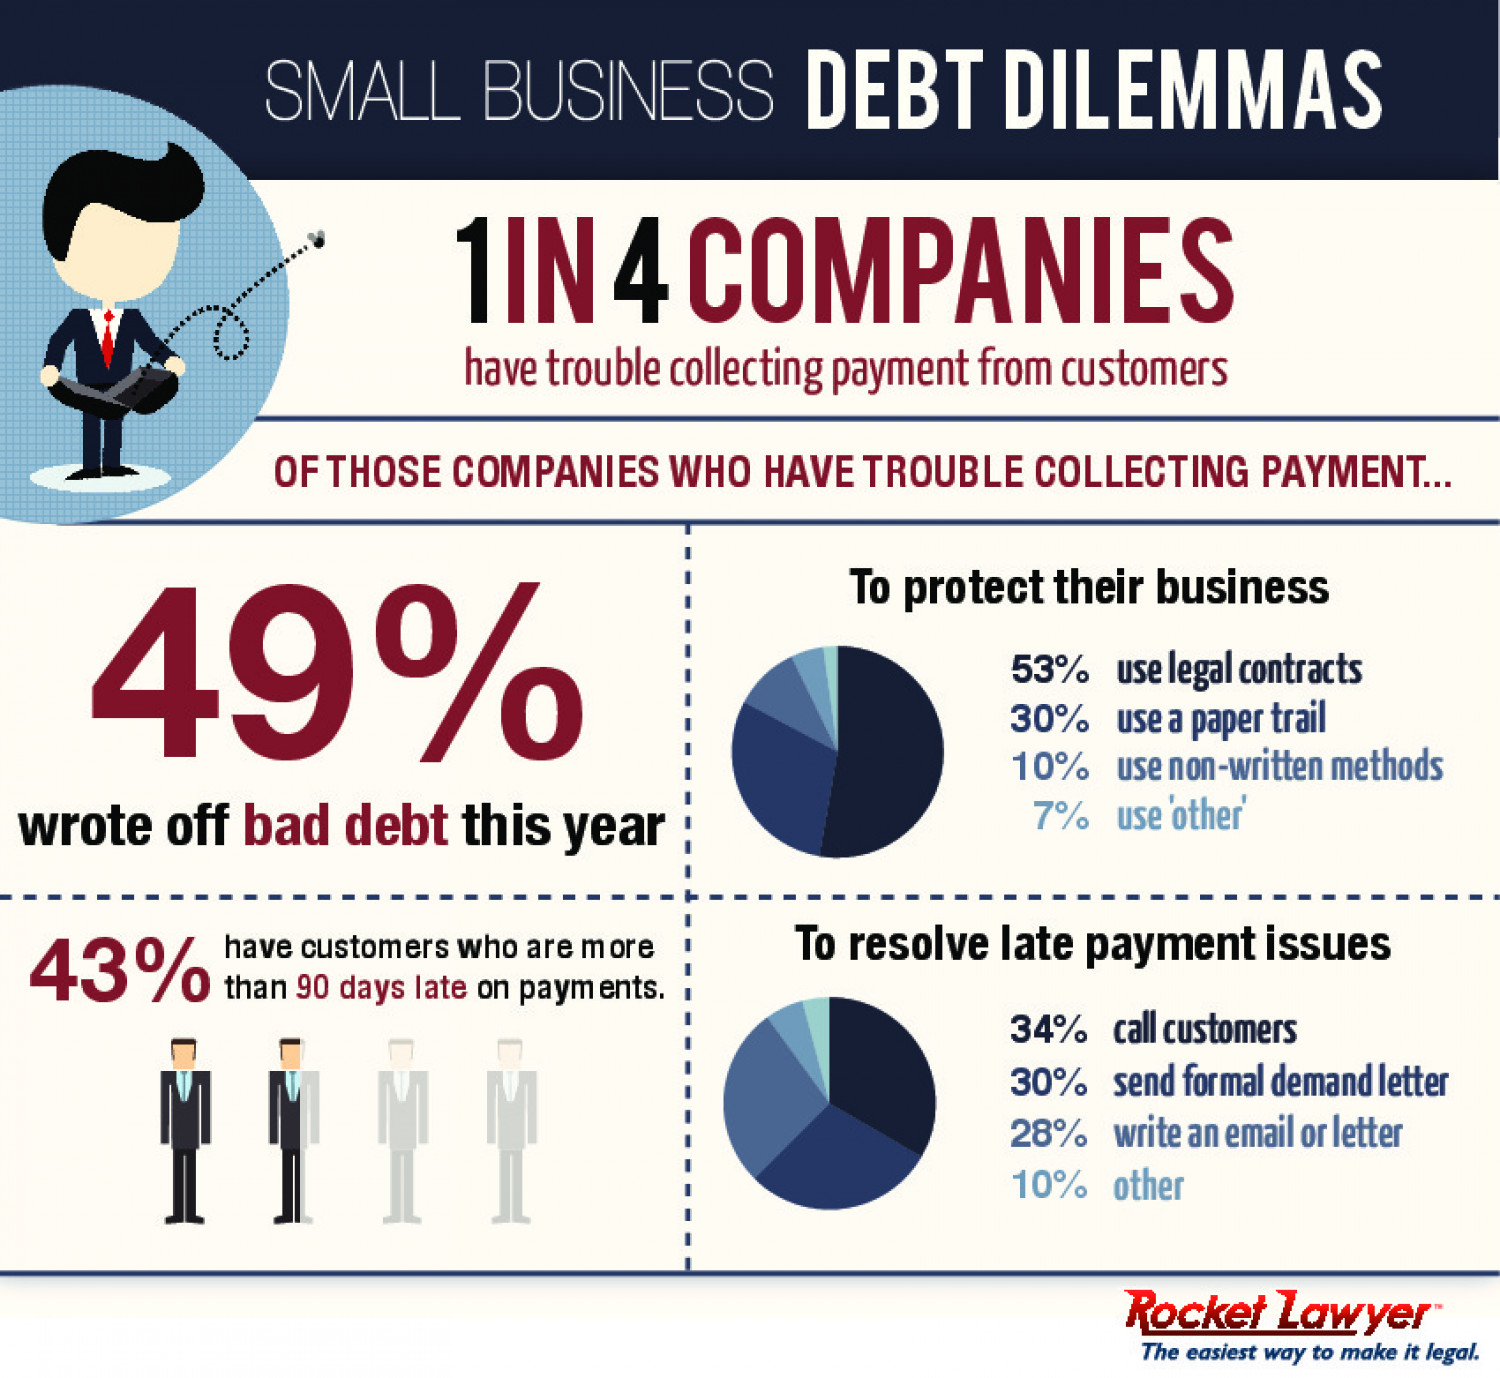 Small Business Debt Collection Dilemmas Visual